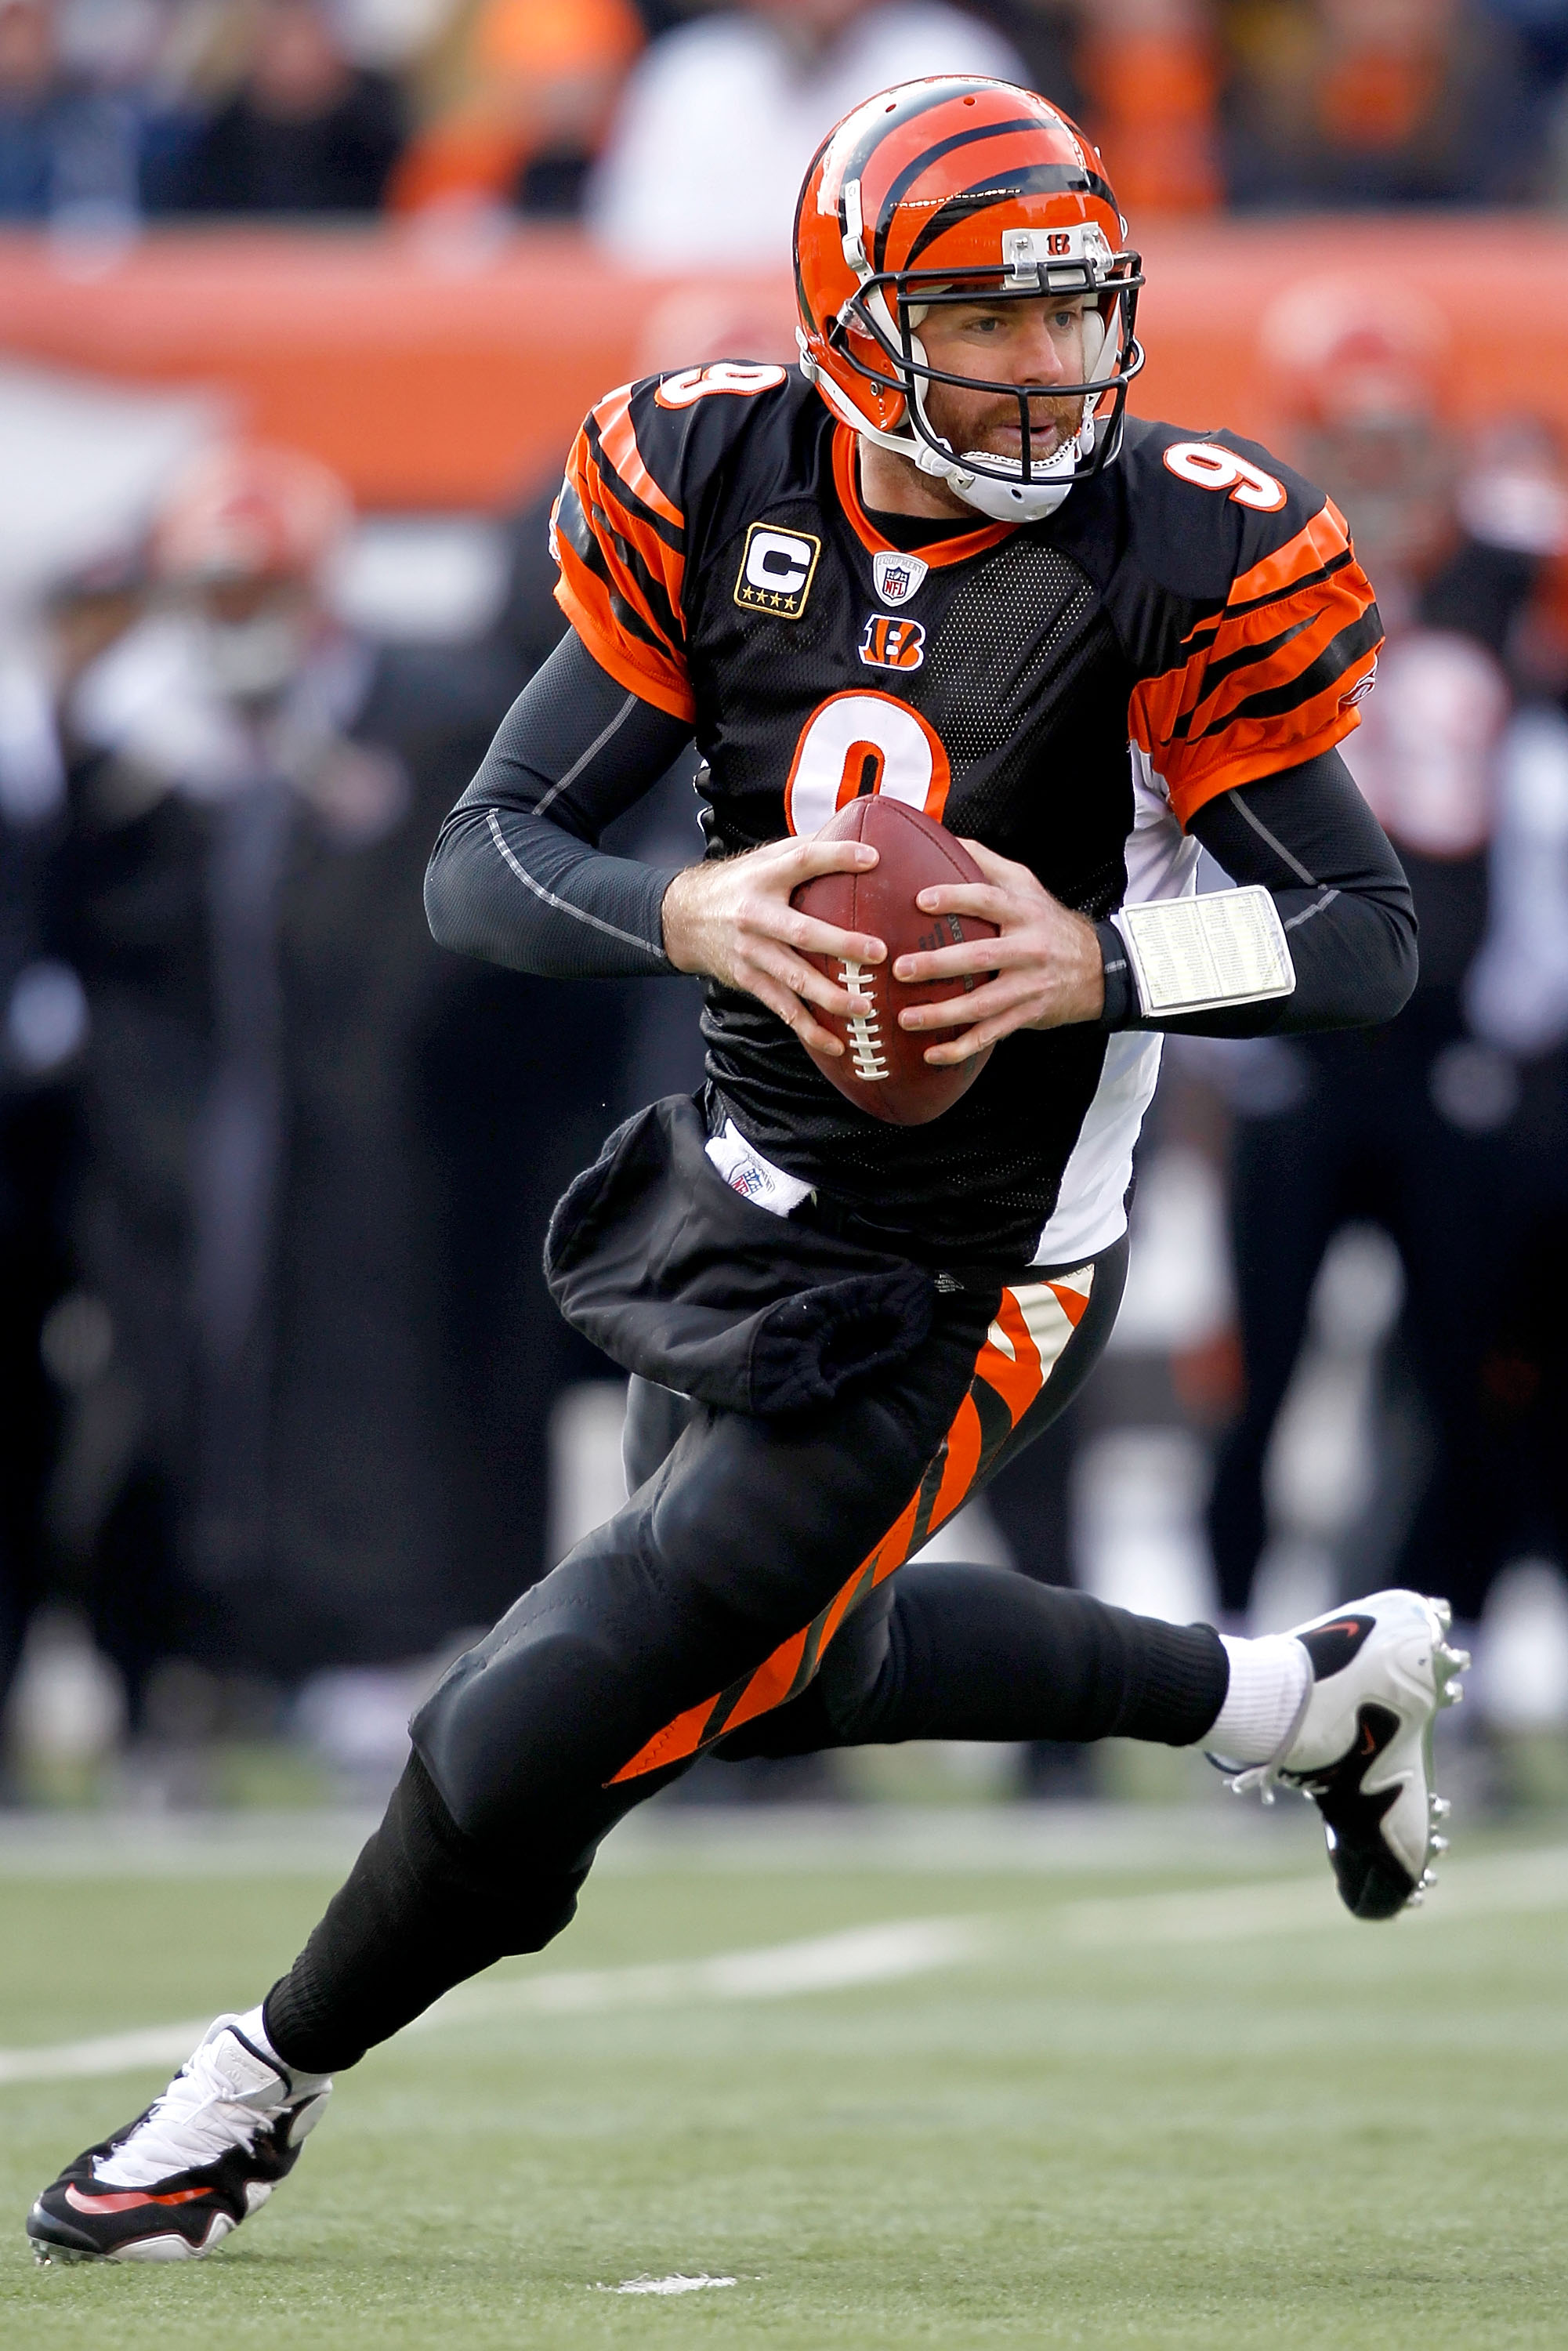 CINCINNATI, OH - DECEMBER 19:  Quarterback Carson Palmer #9 of the Cincinnati Bengals rolls out of the pocket while playing the Cleveland Browns at Paul Brown Stadium on December 19, 2010 in Cincinnati, Ohio.  (Photo by Matthew Stockman/Getty Images)